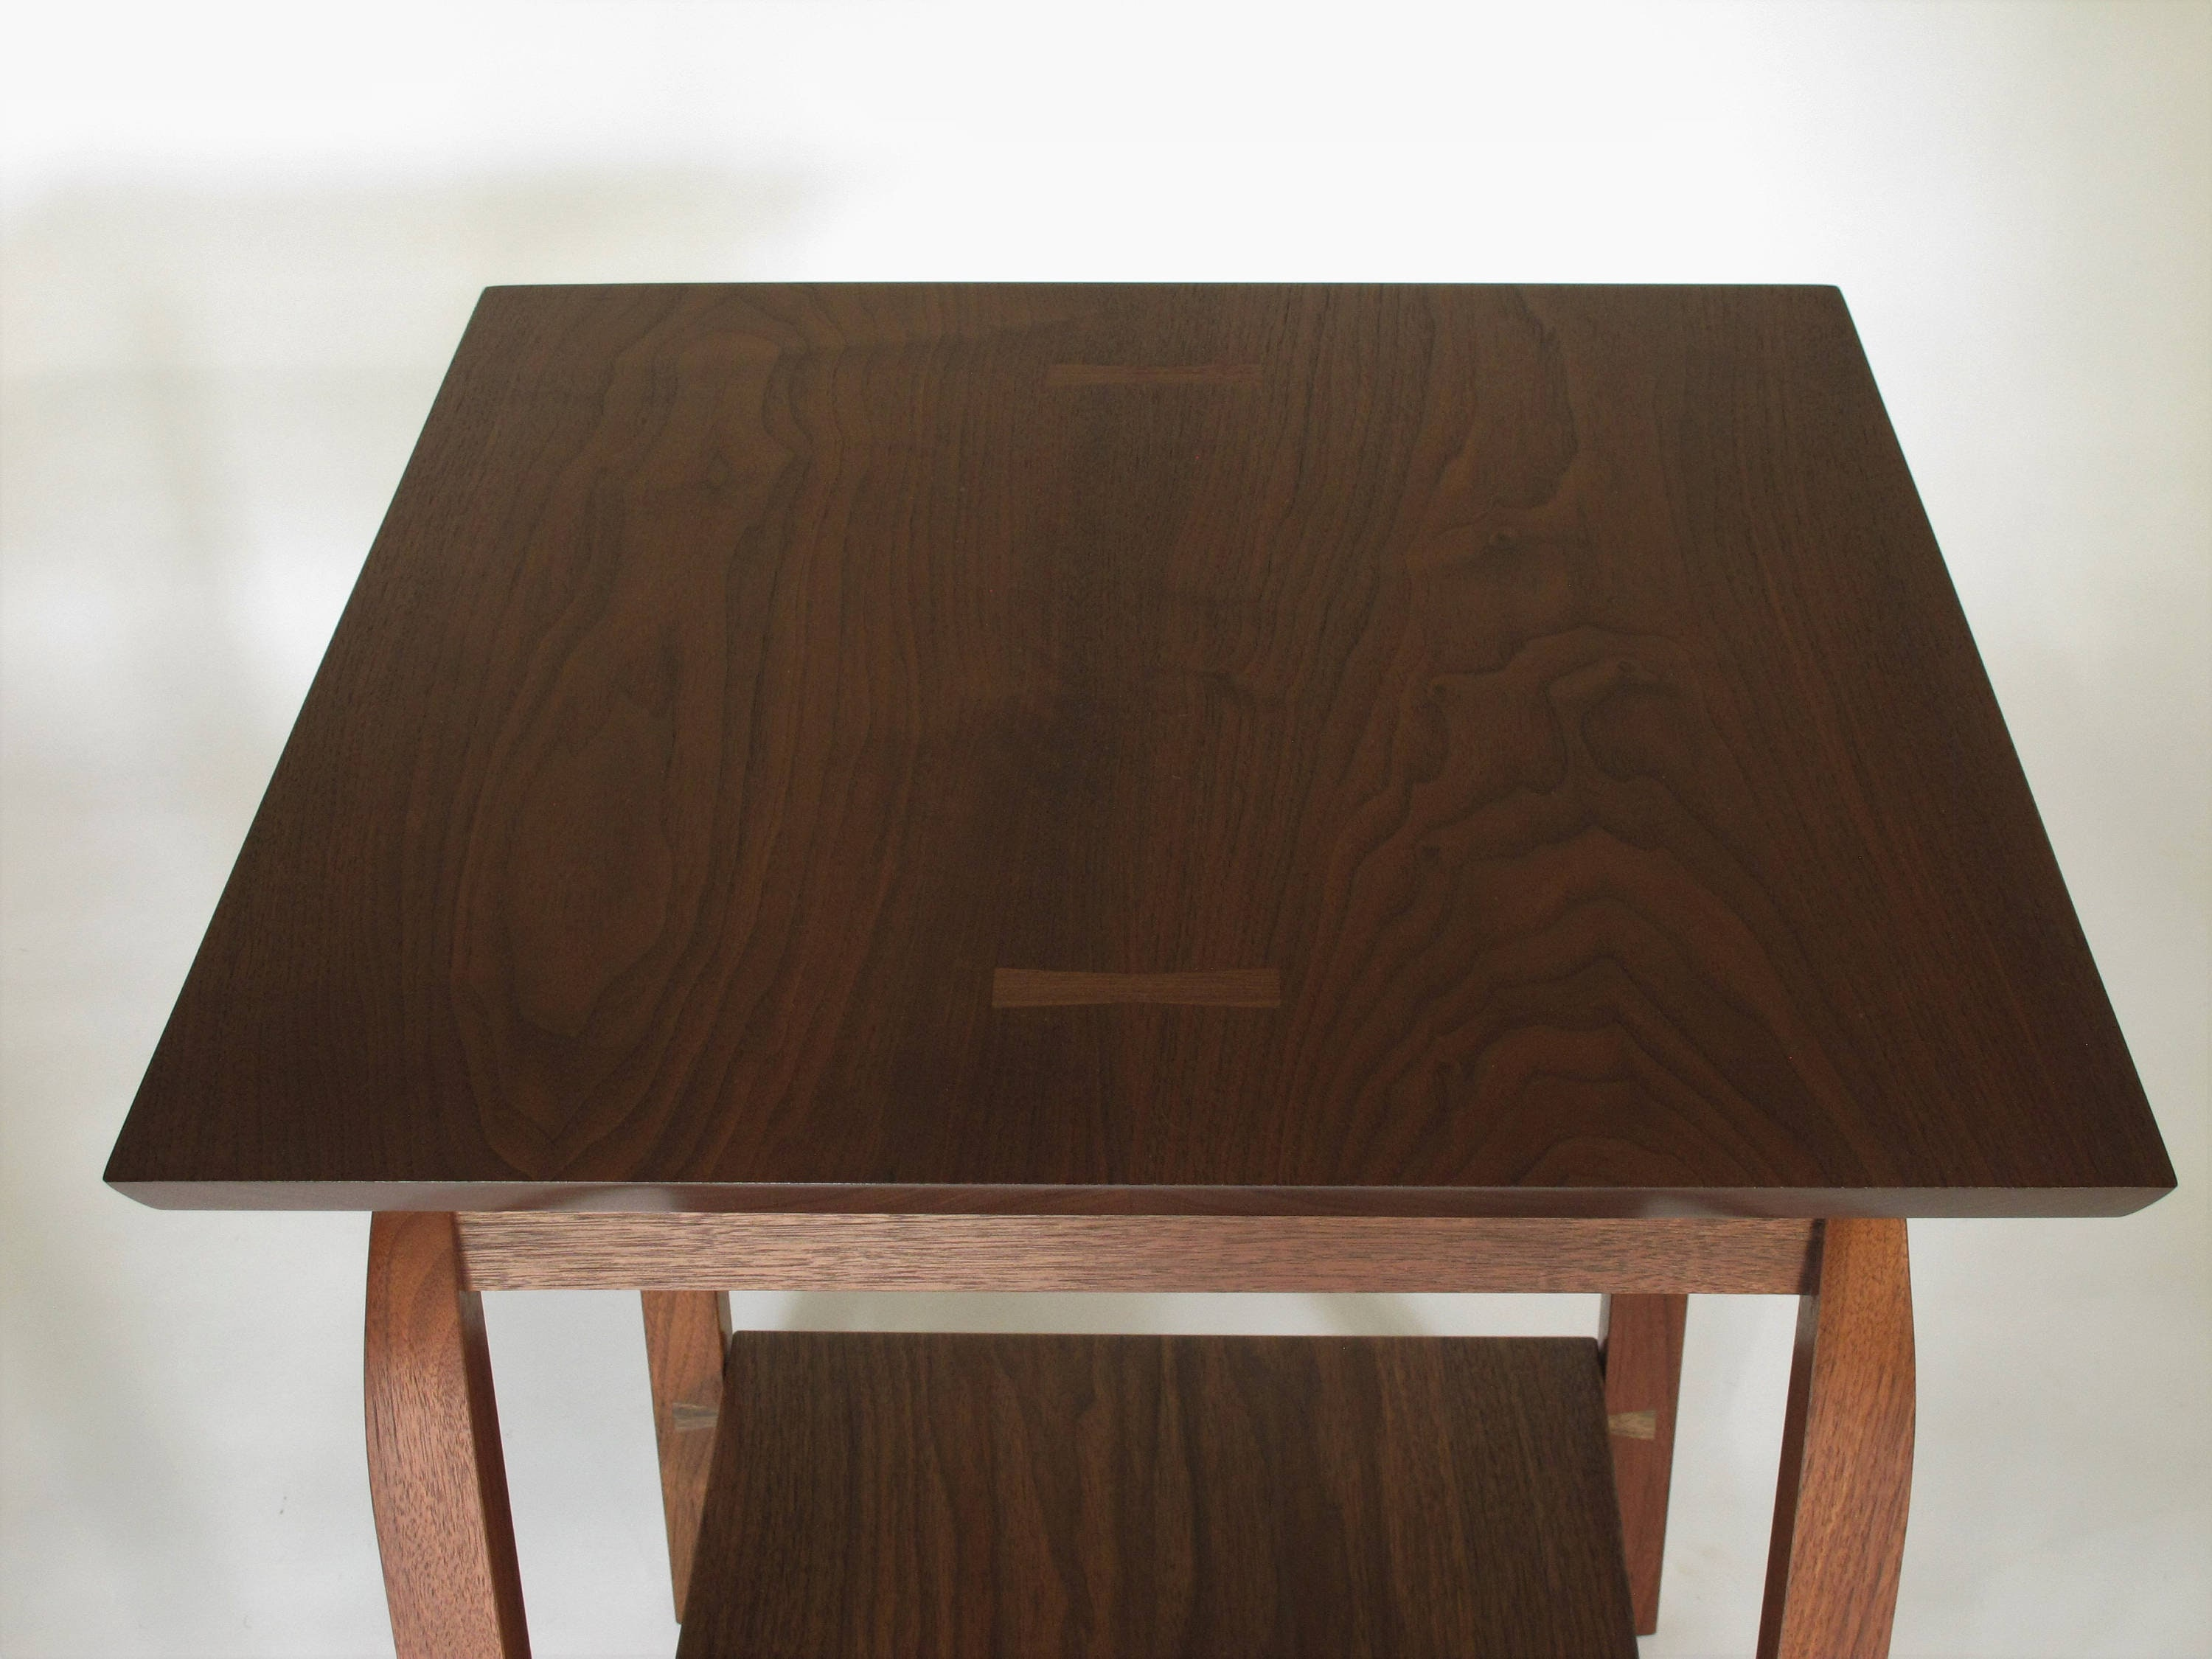 Almost Square Side Table Wood Accent Furniture For Living Etsy